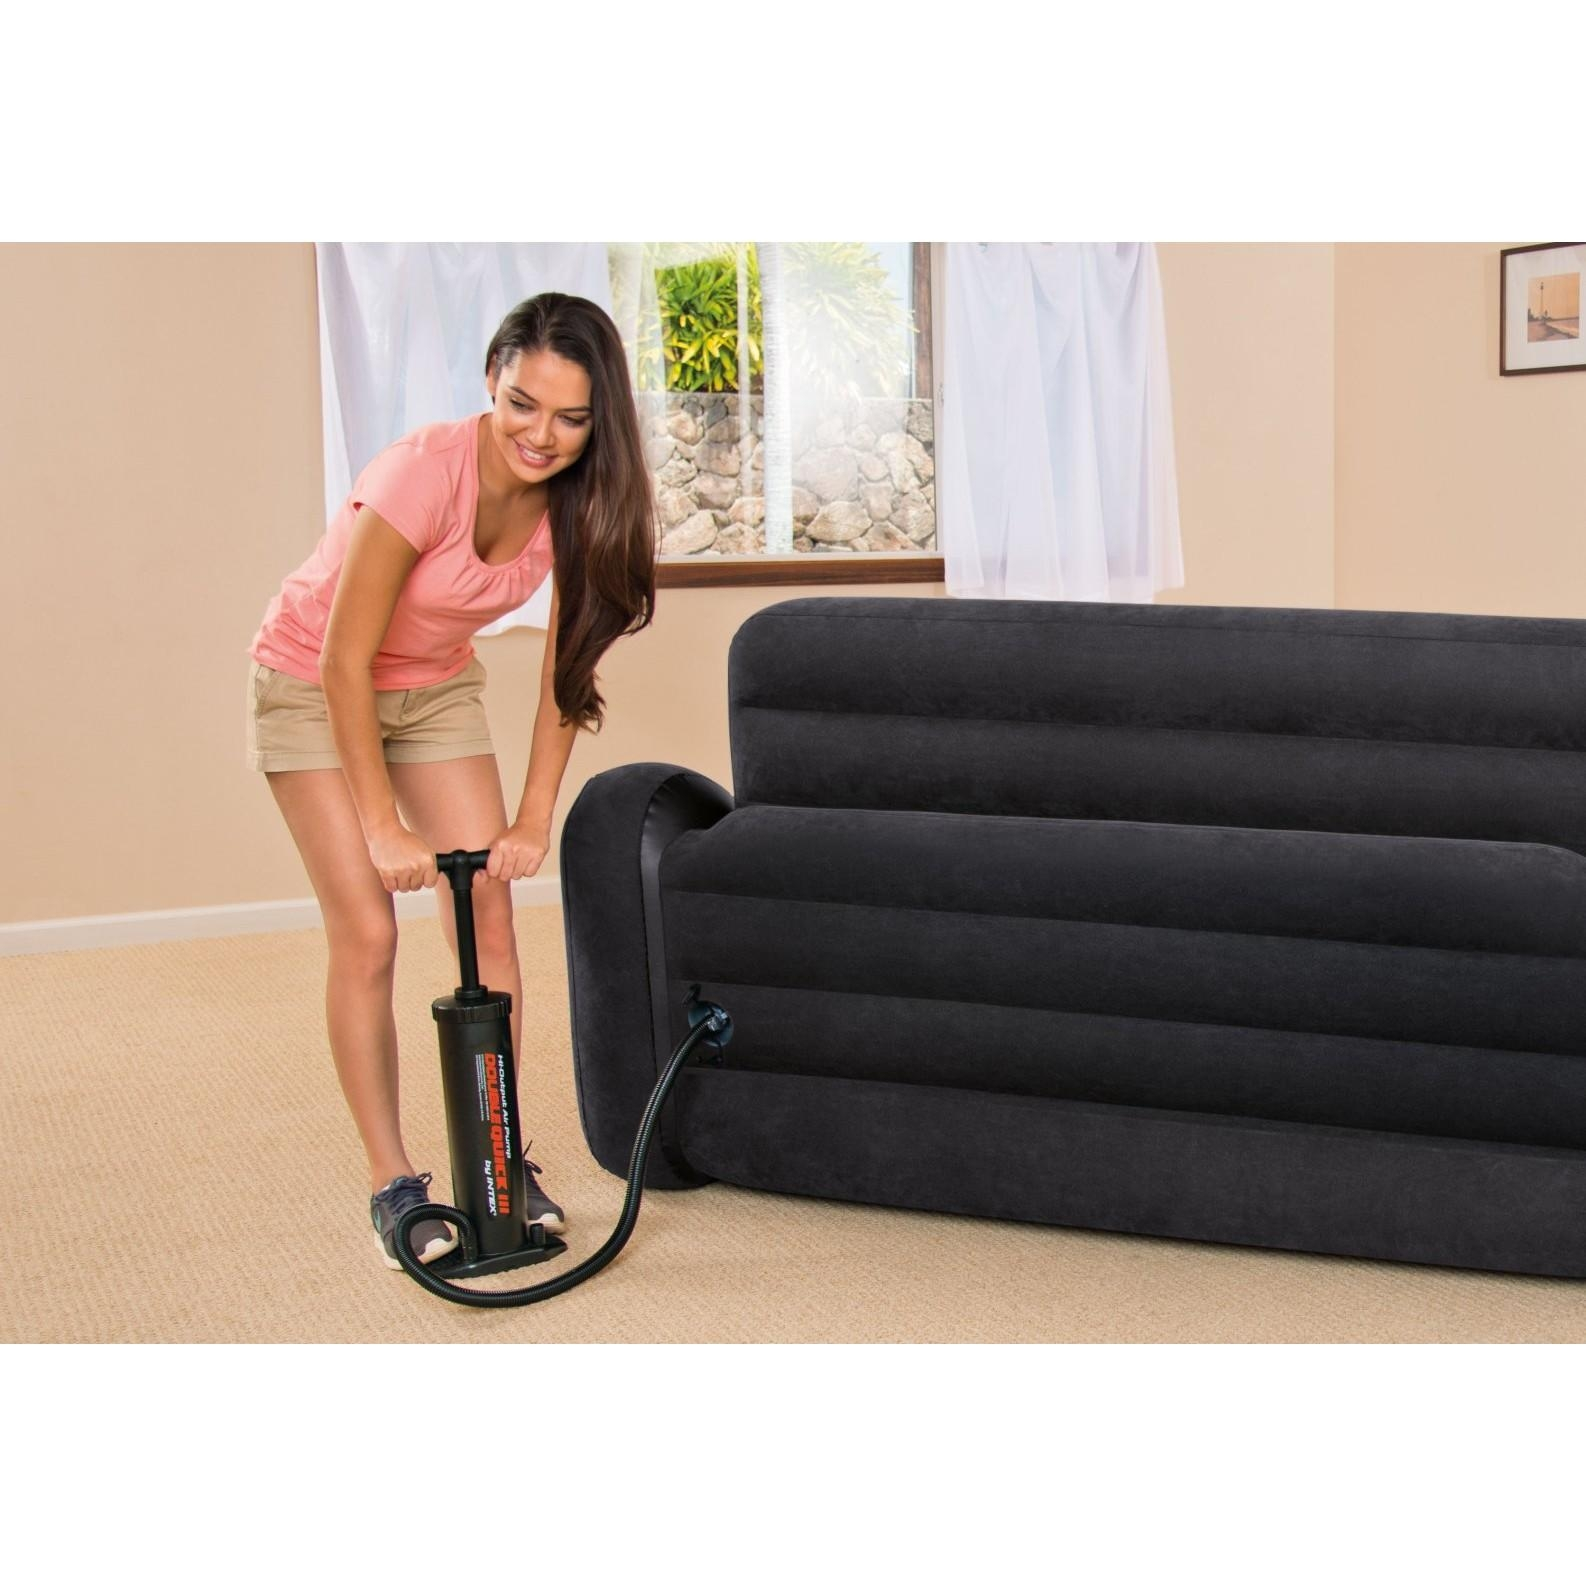 Intex Pull Out Sofa Inflatable Bed, Queen With Regard To Intex Inflatable Pull Out Sofas (Image 13 of 20)